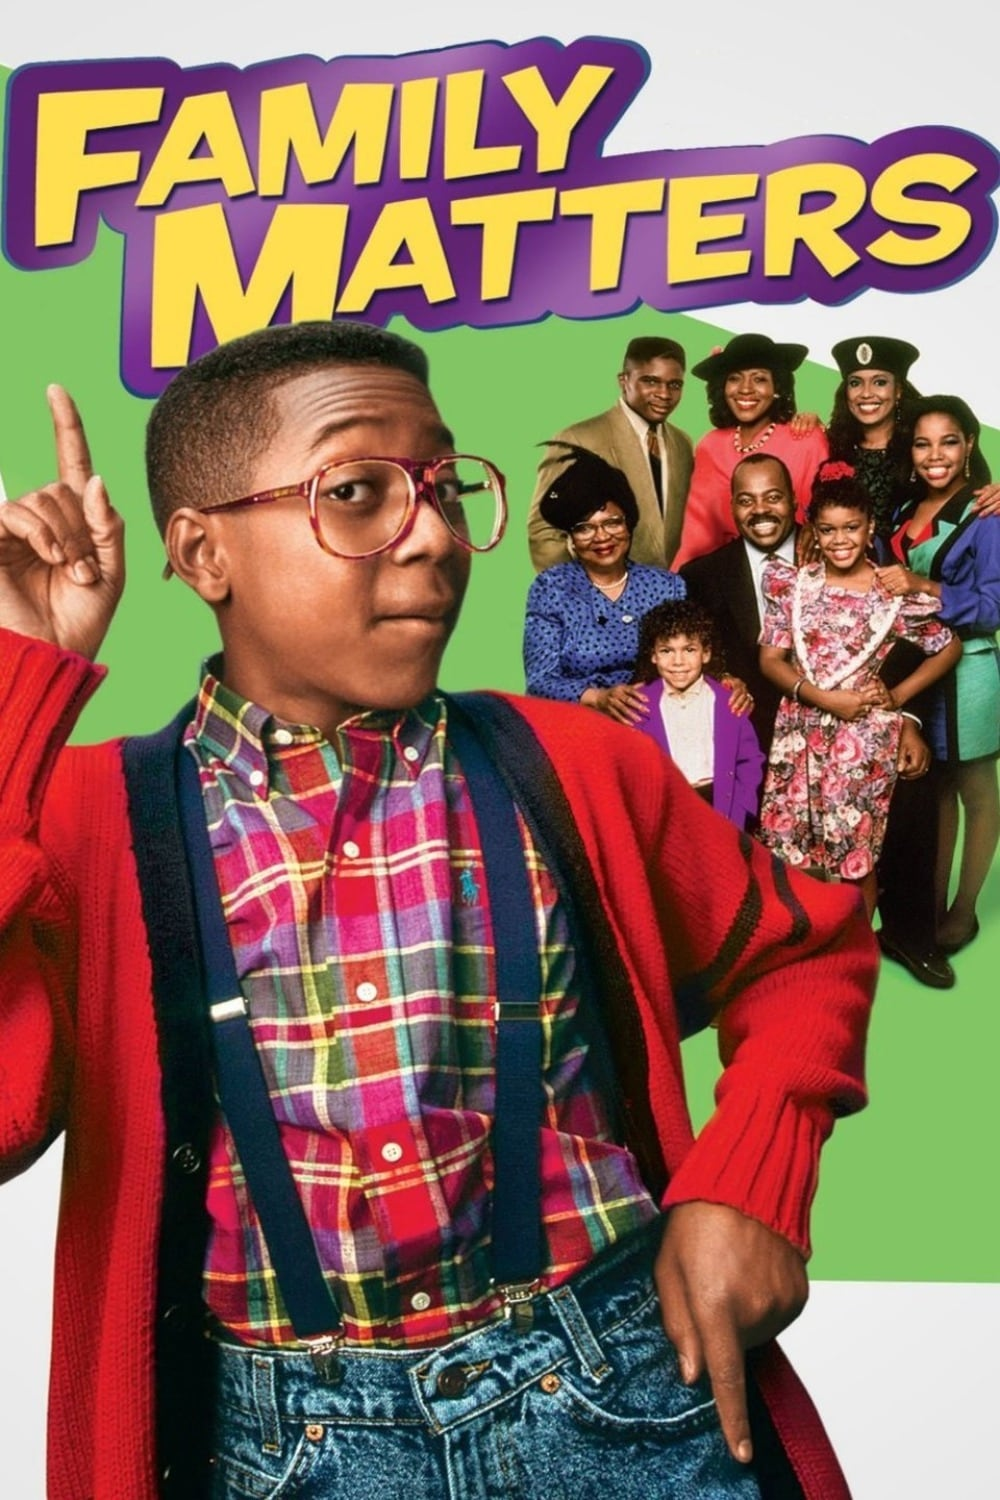 family matters 1989 movie media pictures videos etc. Black Bedroom Furniture Sets. Home Design Ideas